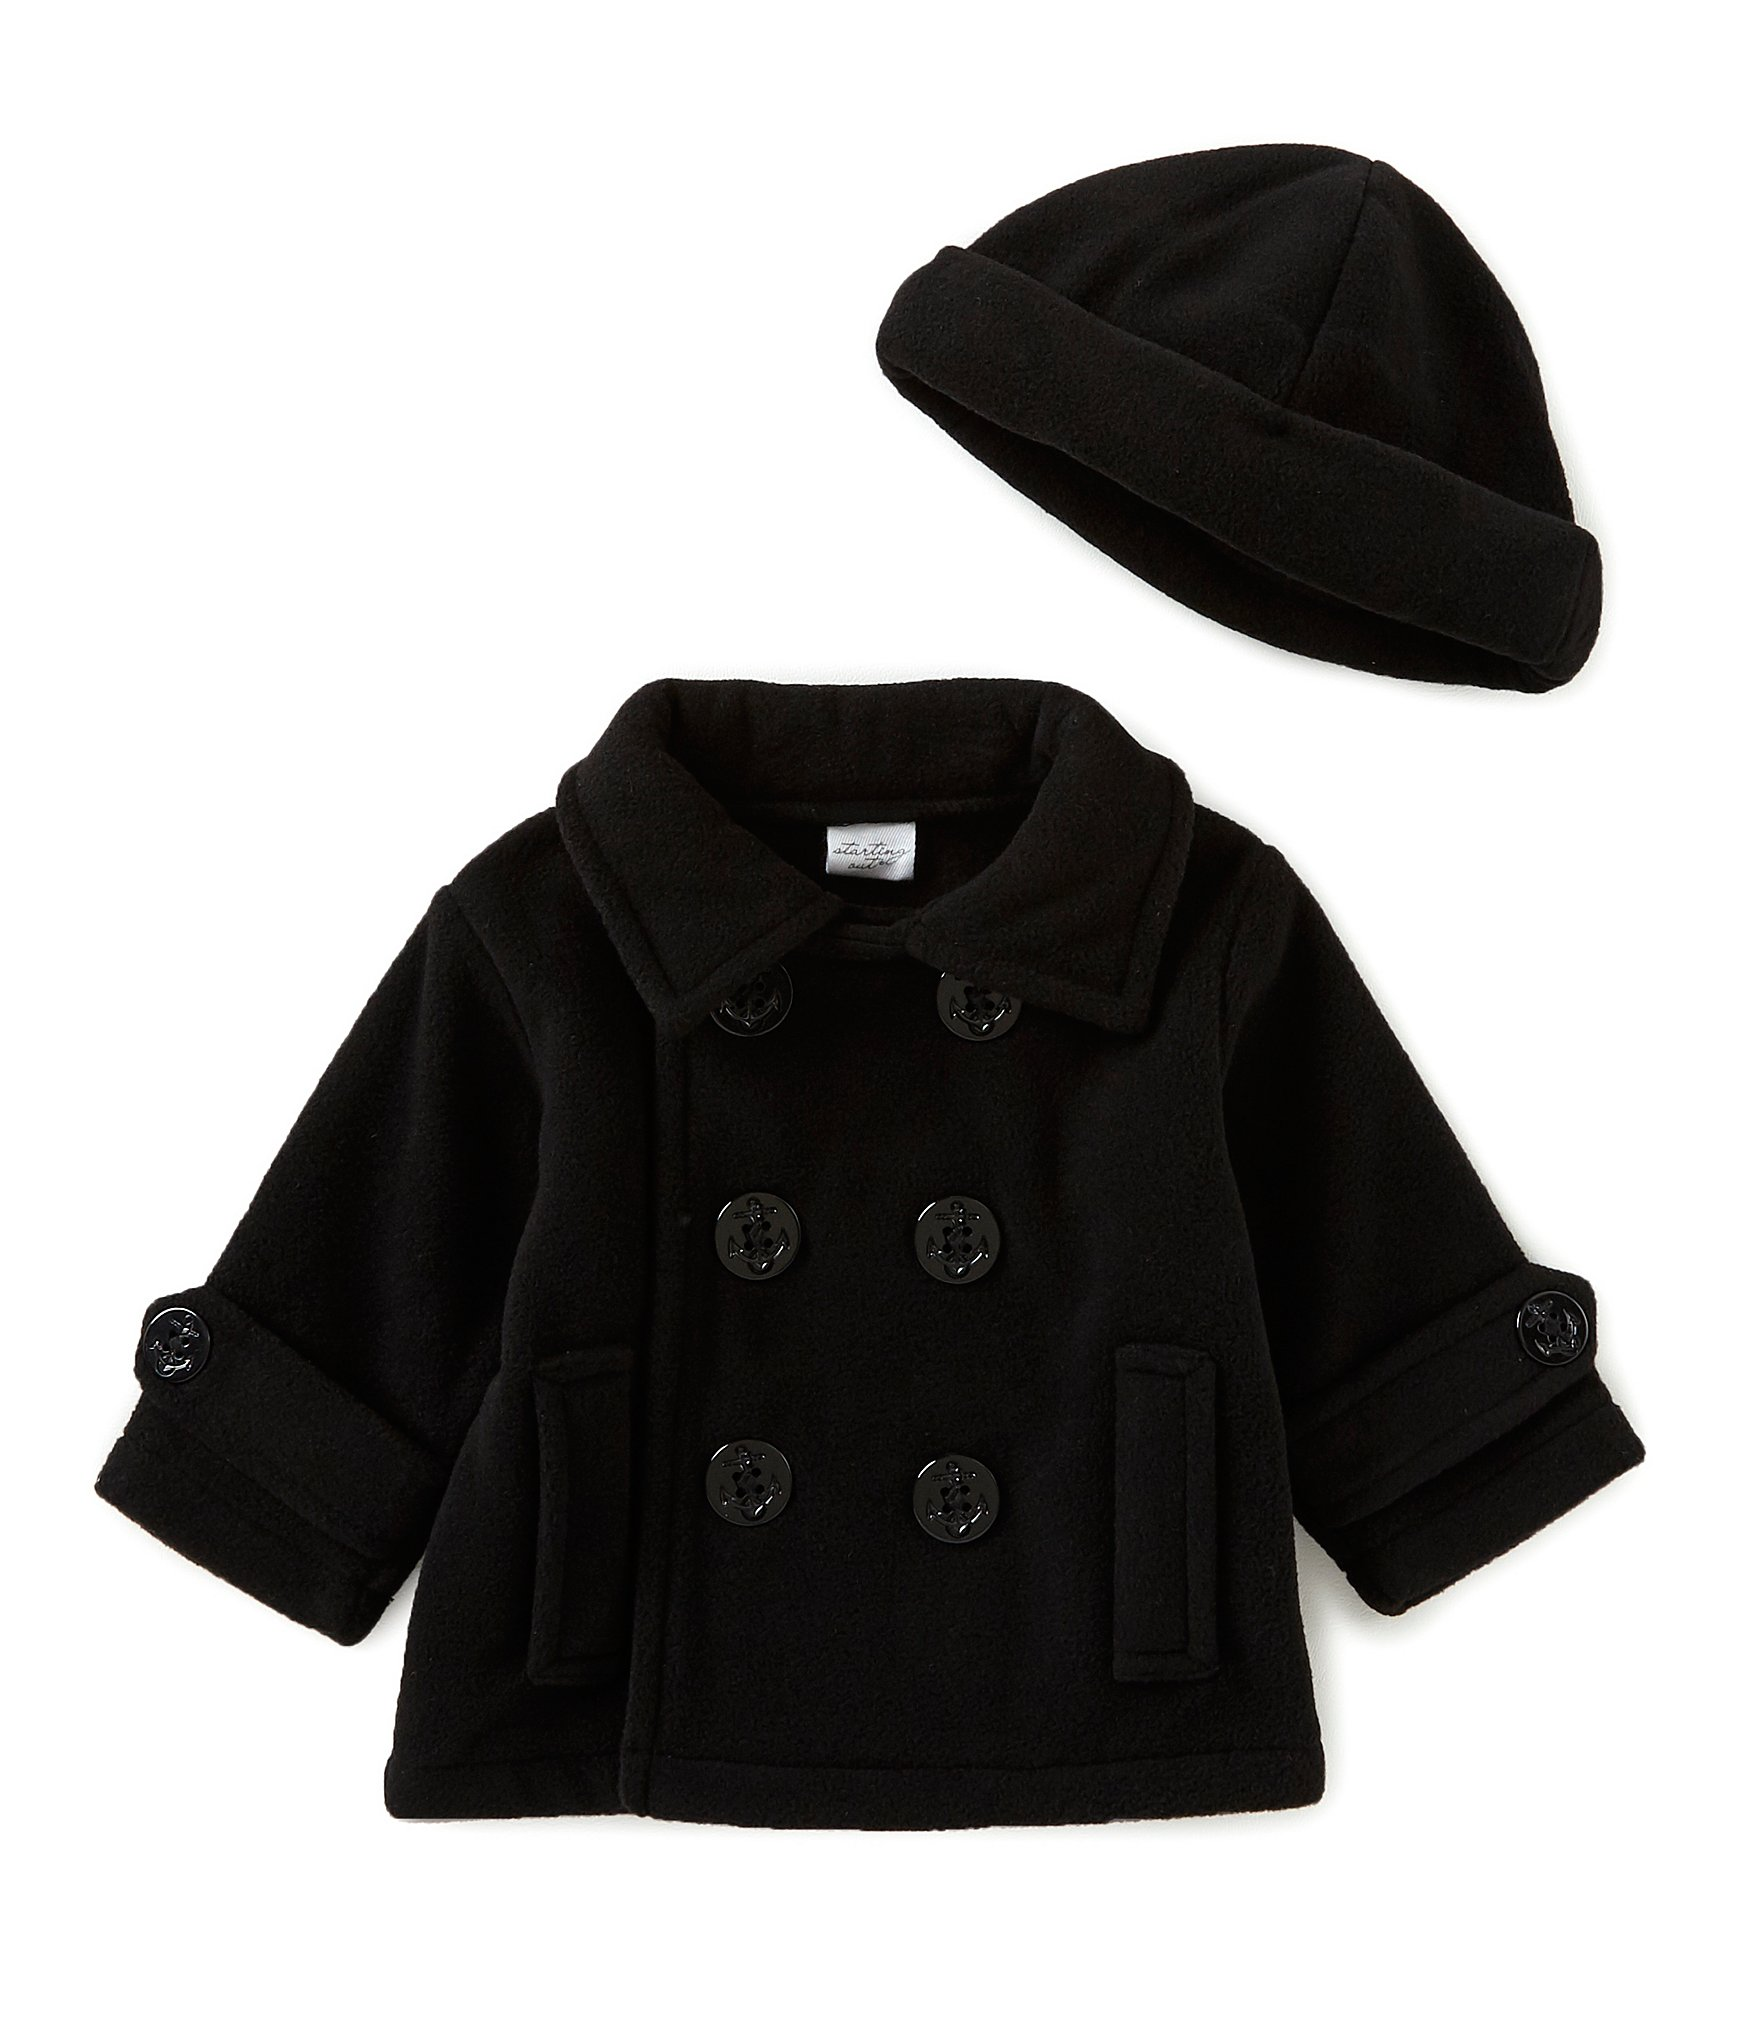 7f62d841bcc9 Black Baby Boy Coats   Cold Weather Accessories